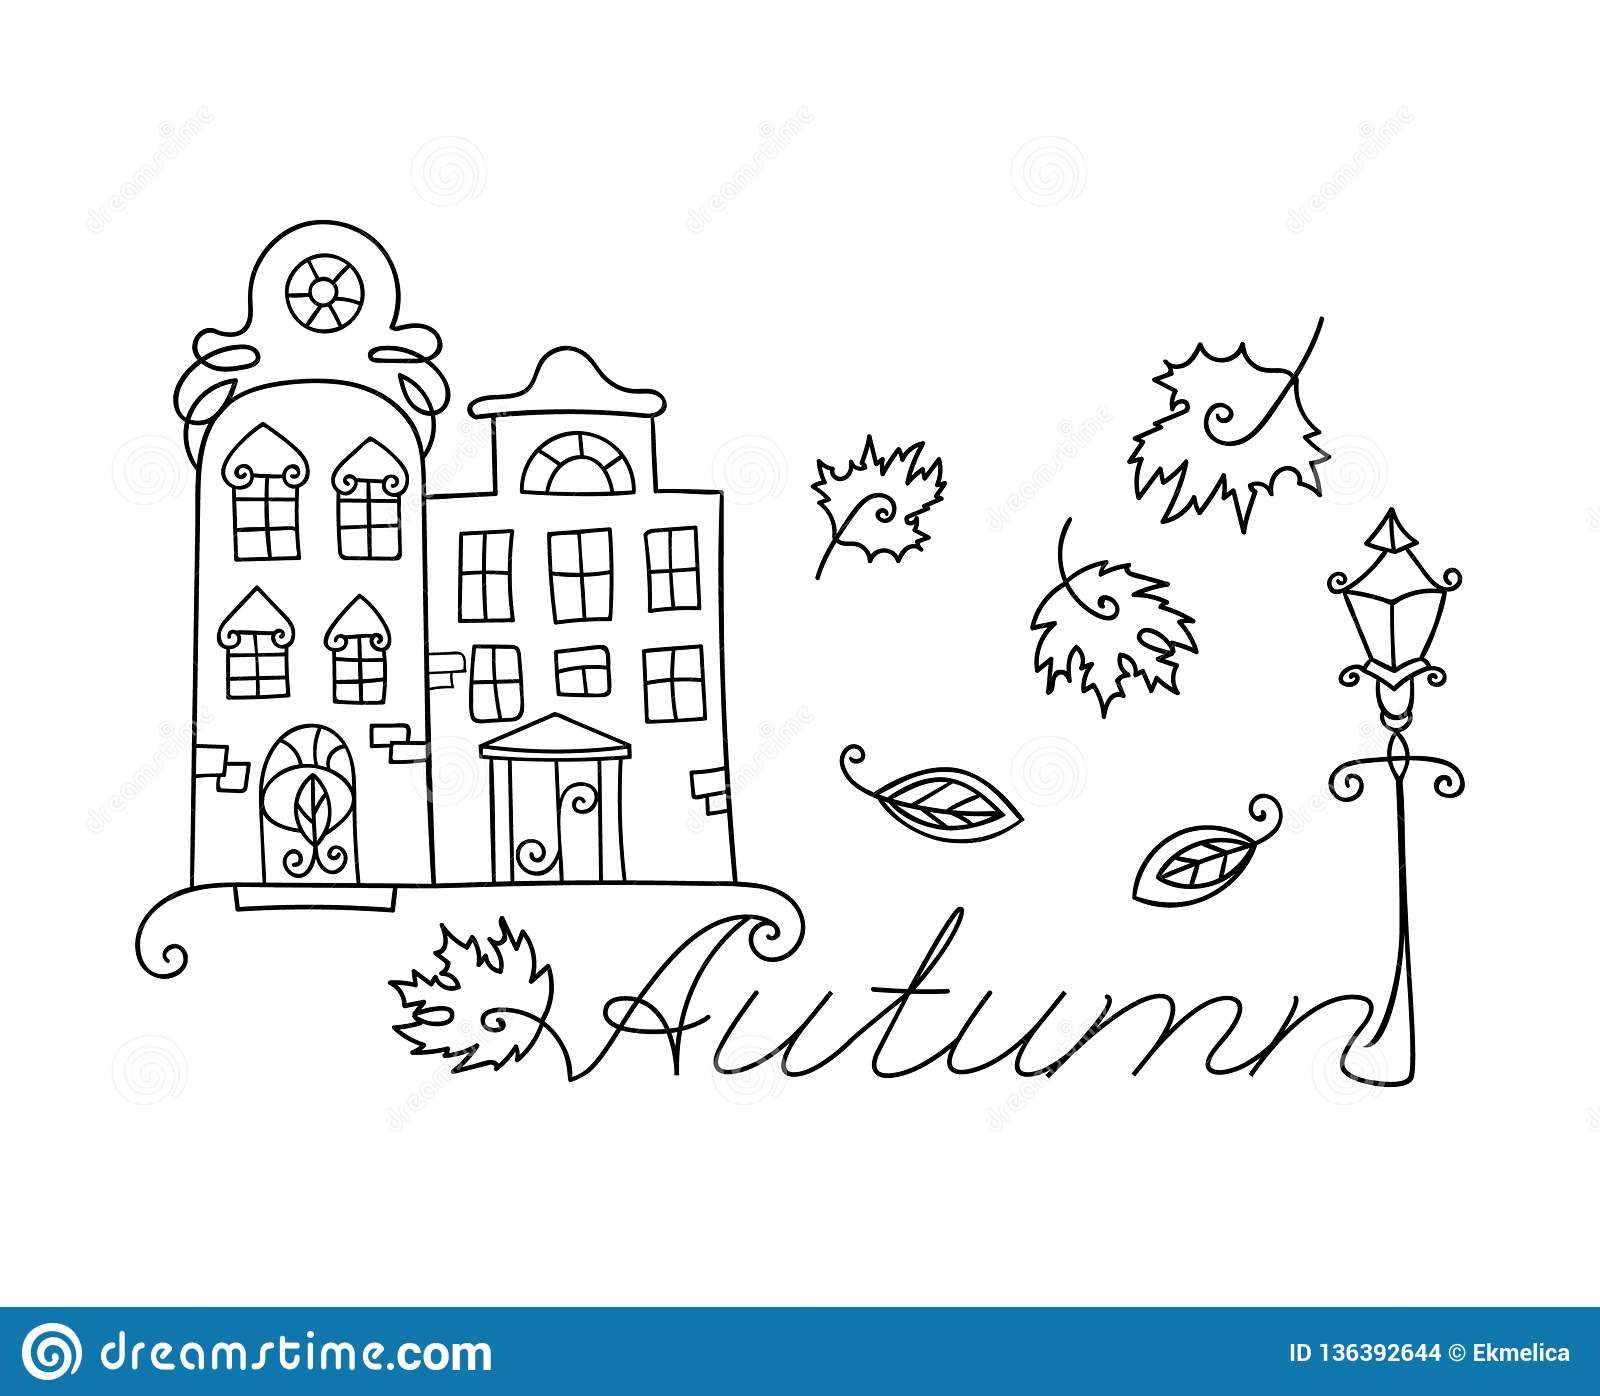 Adult coloring houses stock illustrations 159 adult coloring houses stock illustrations vectors clipart dreamstime